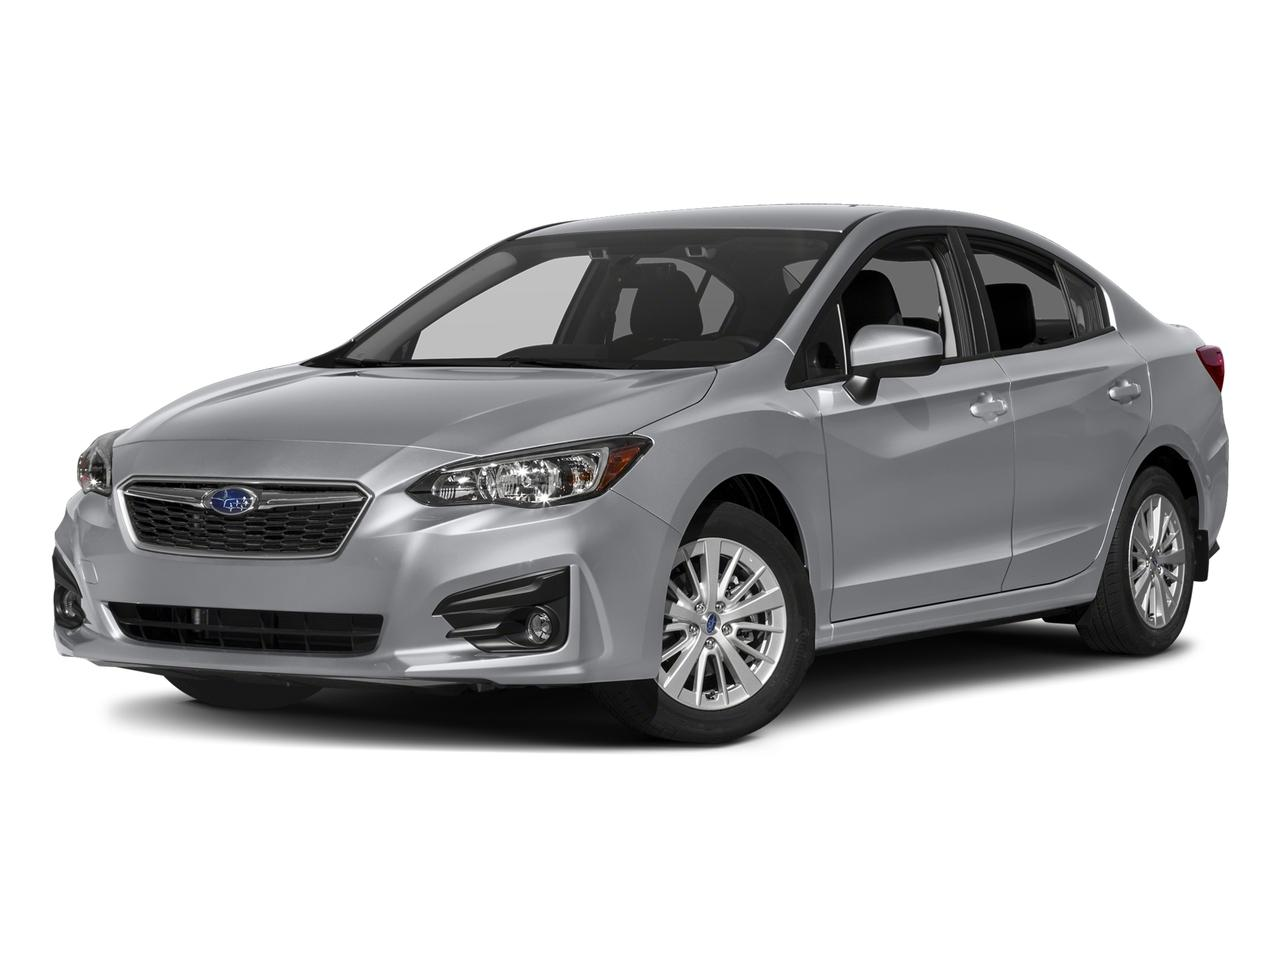 2018 Subaru Impreza Vehicle Photo in Akron, OH 44320